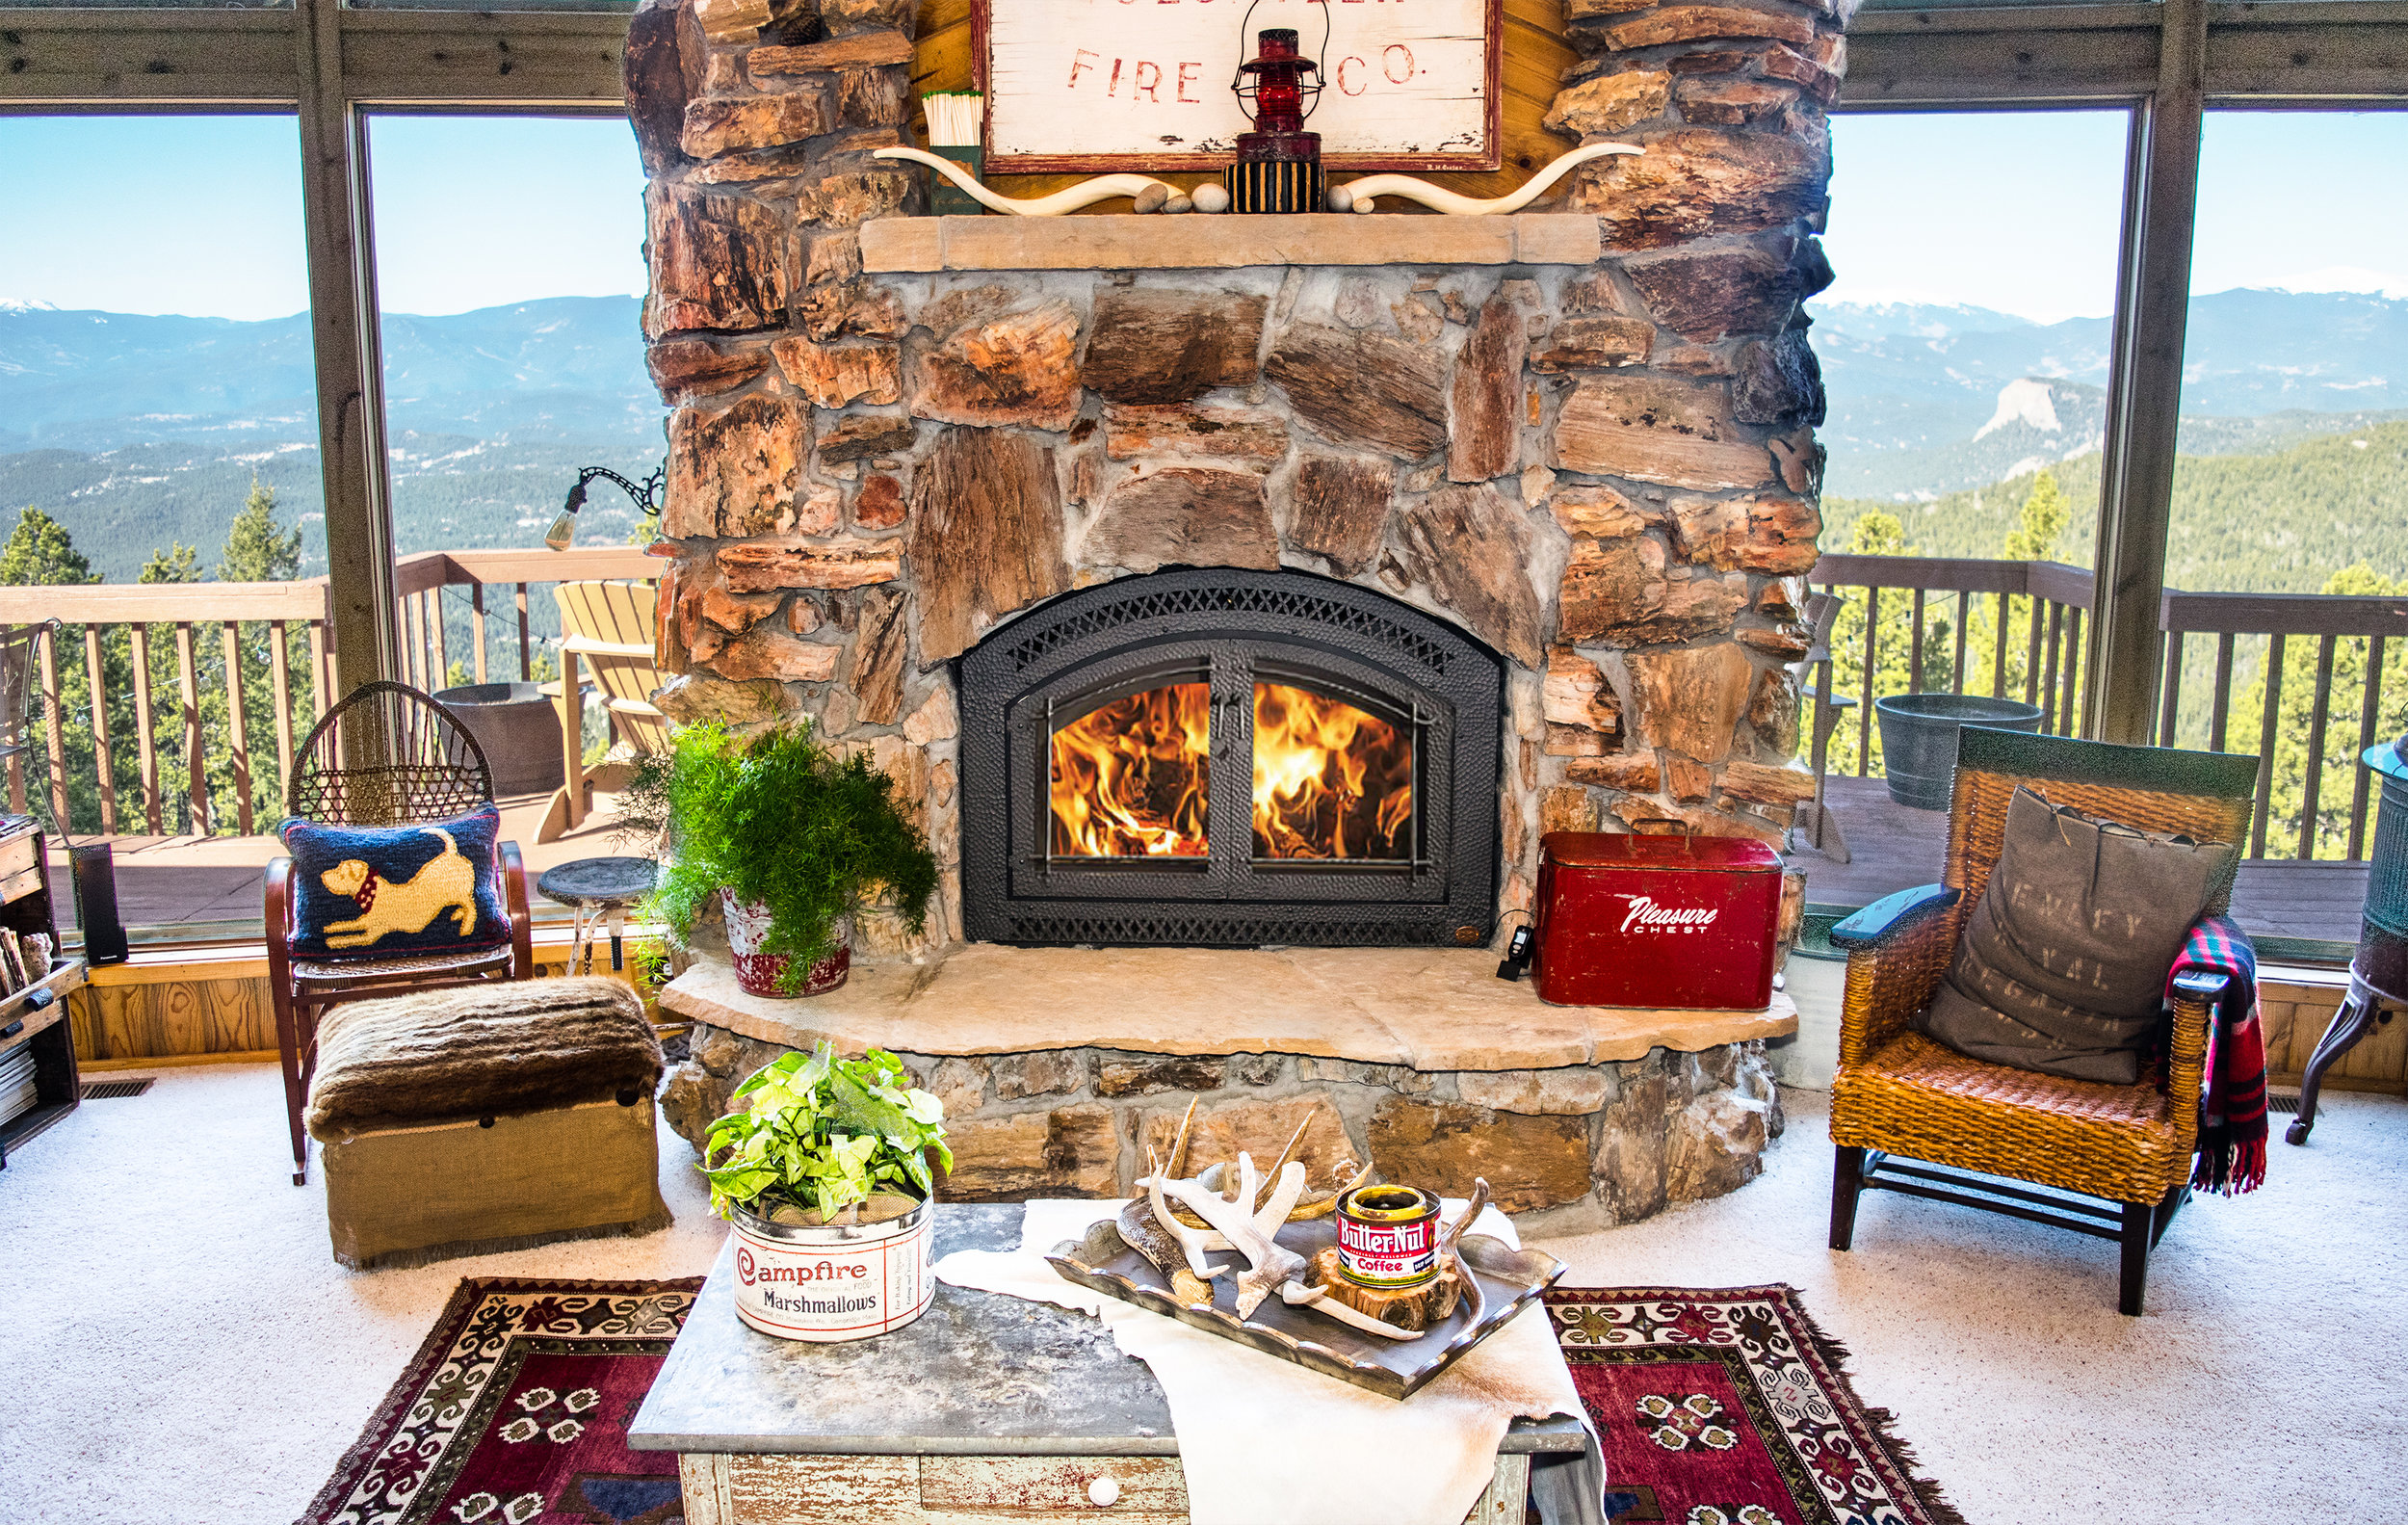 FireplaceX 44 Elite wood burning fireplace in a traditional Colorado mountain home.